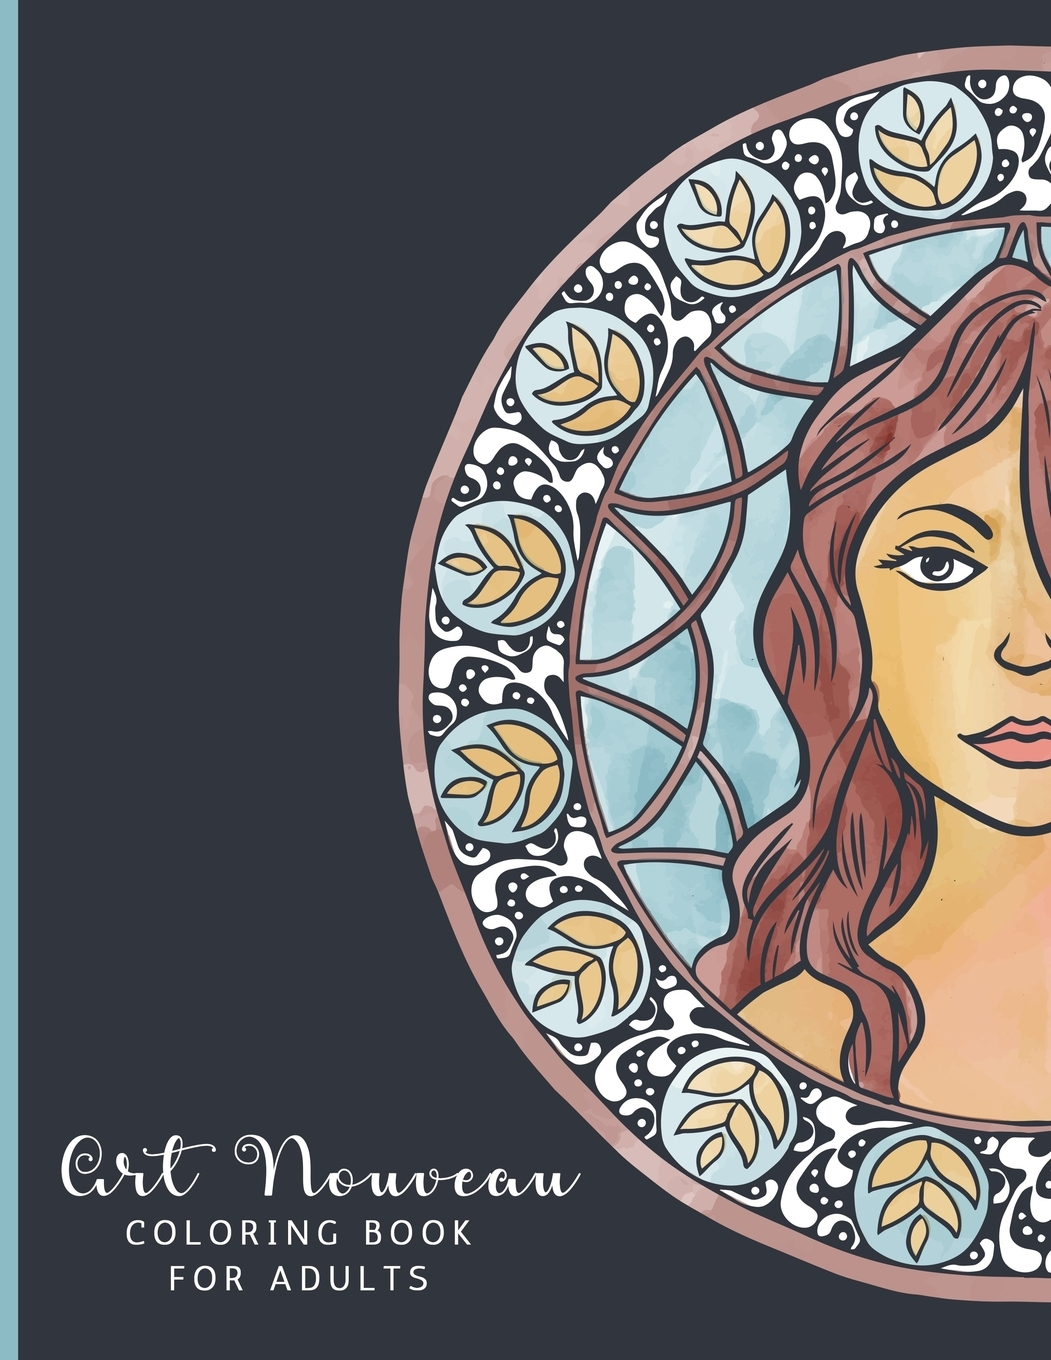 - Art Nouveau Coloring Book For Adults : For Adults, Teens And Kids - Fun,  Easy And Relaxing Beautiful